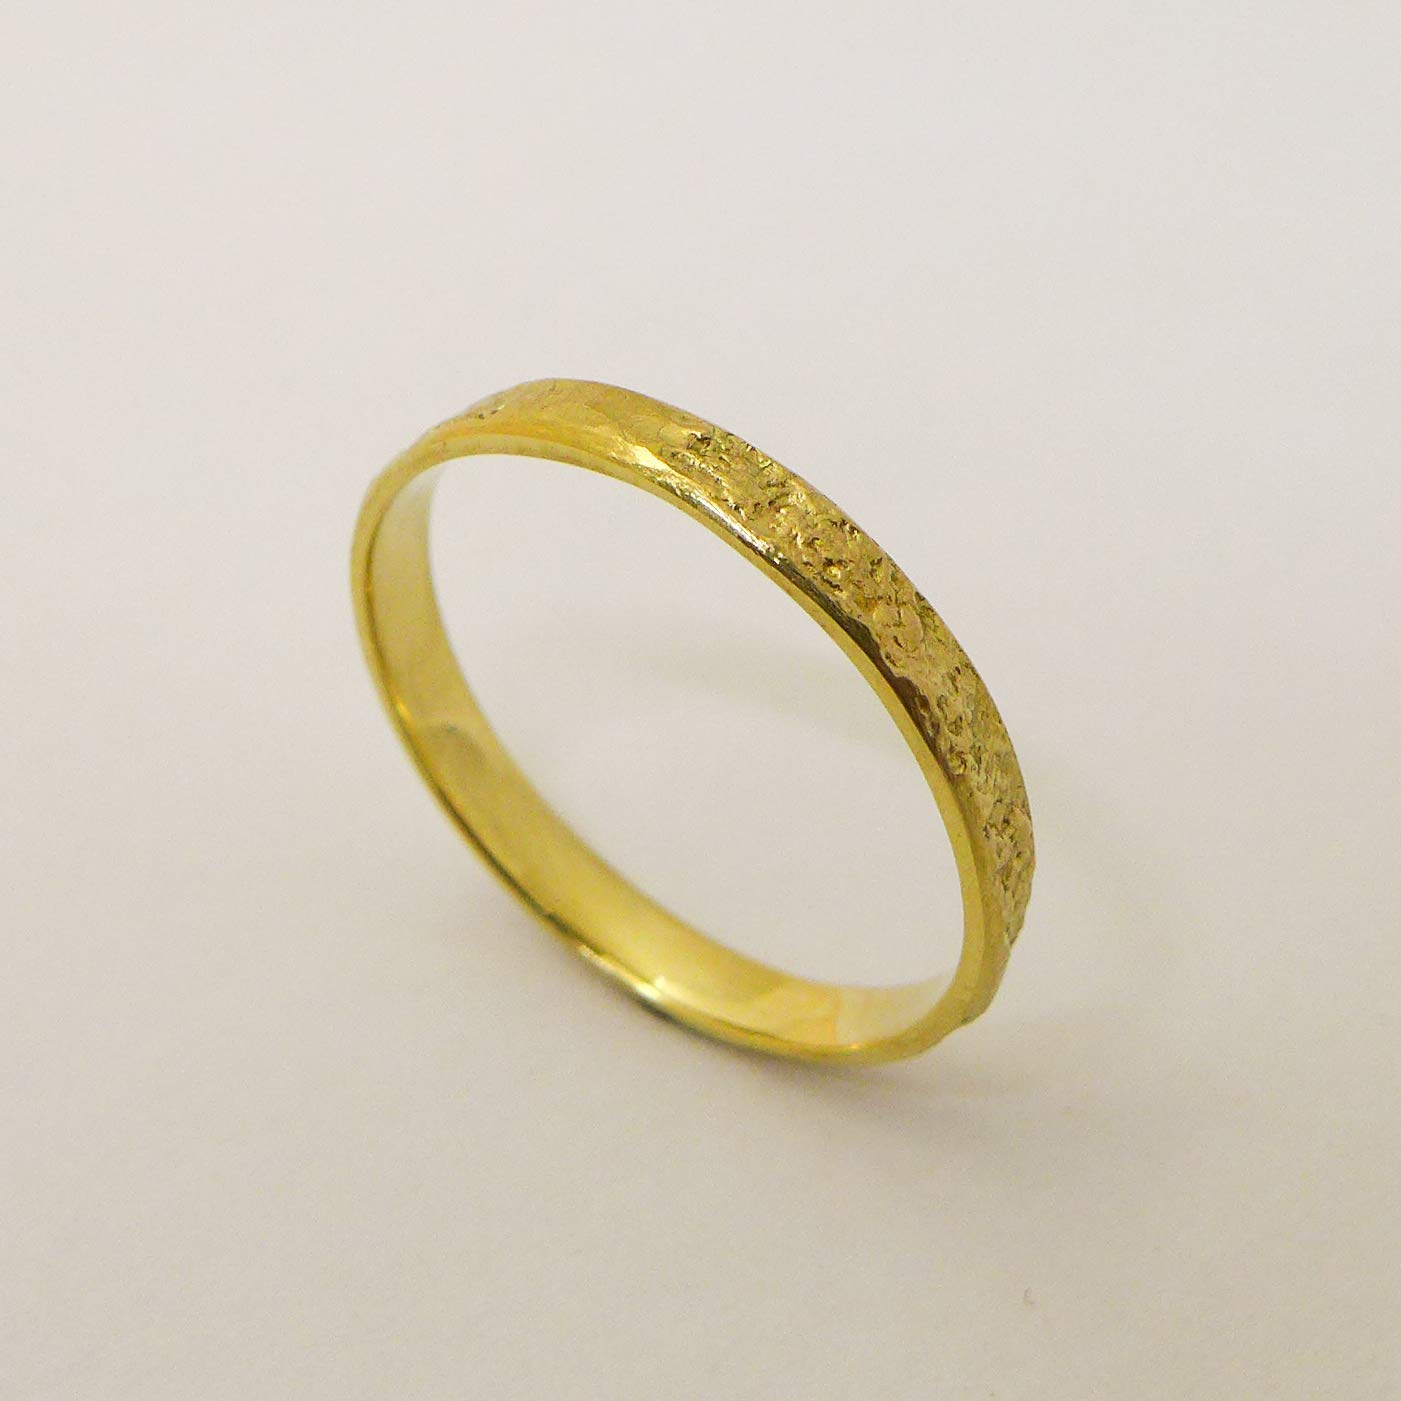 Amazon Thin Wedding Band Handmade Of 14k 18k Solid Yellow Rose Or White Gold Artisan Men's And Women's Dainty Rustic Ring: Simple Unique Wedding Rings At Reisefeber.org